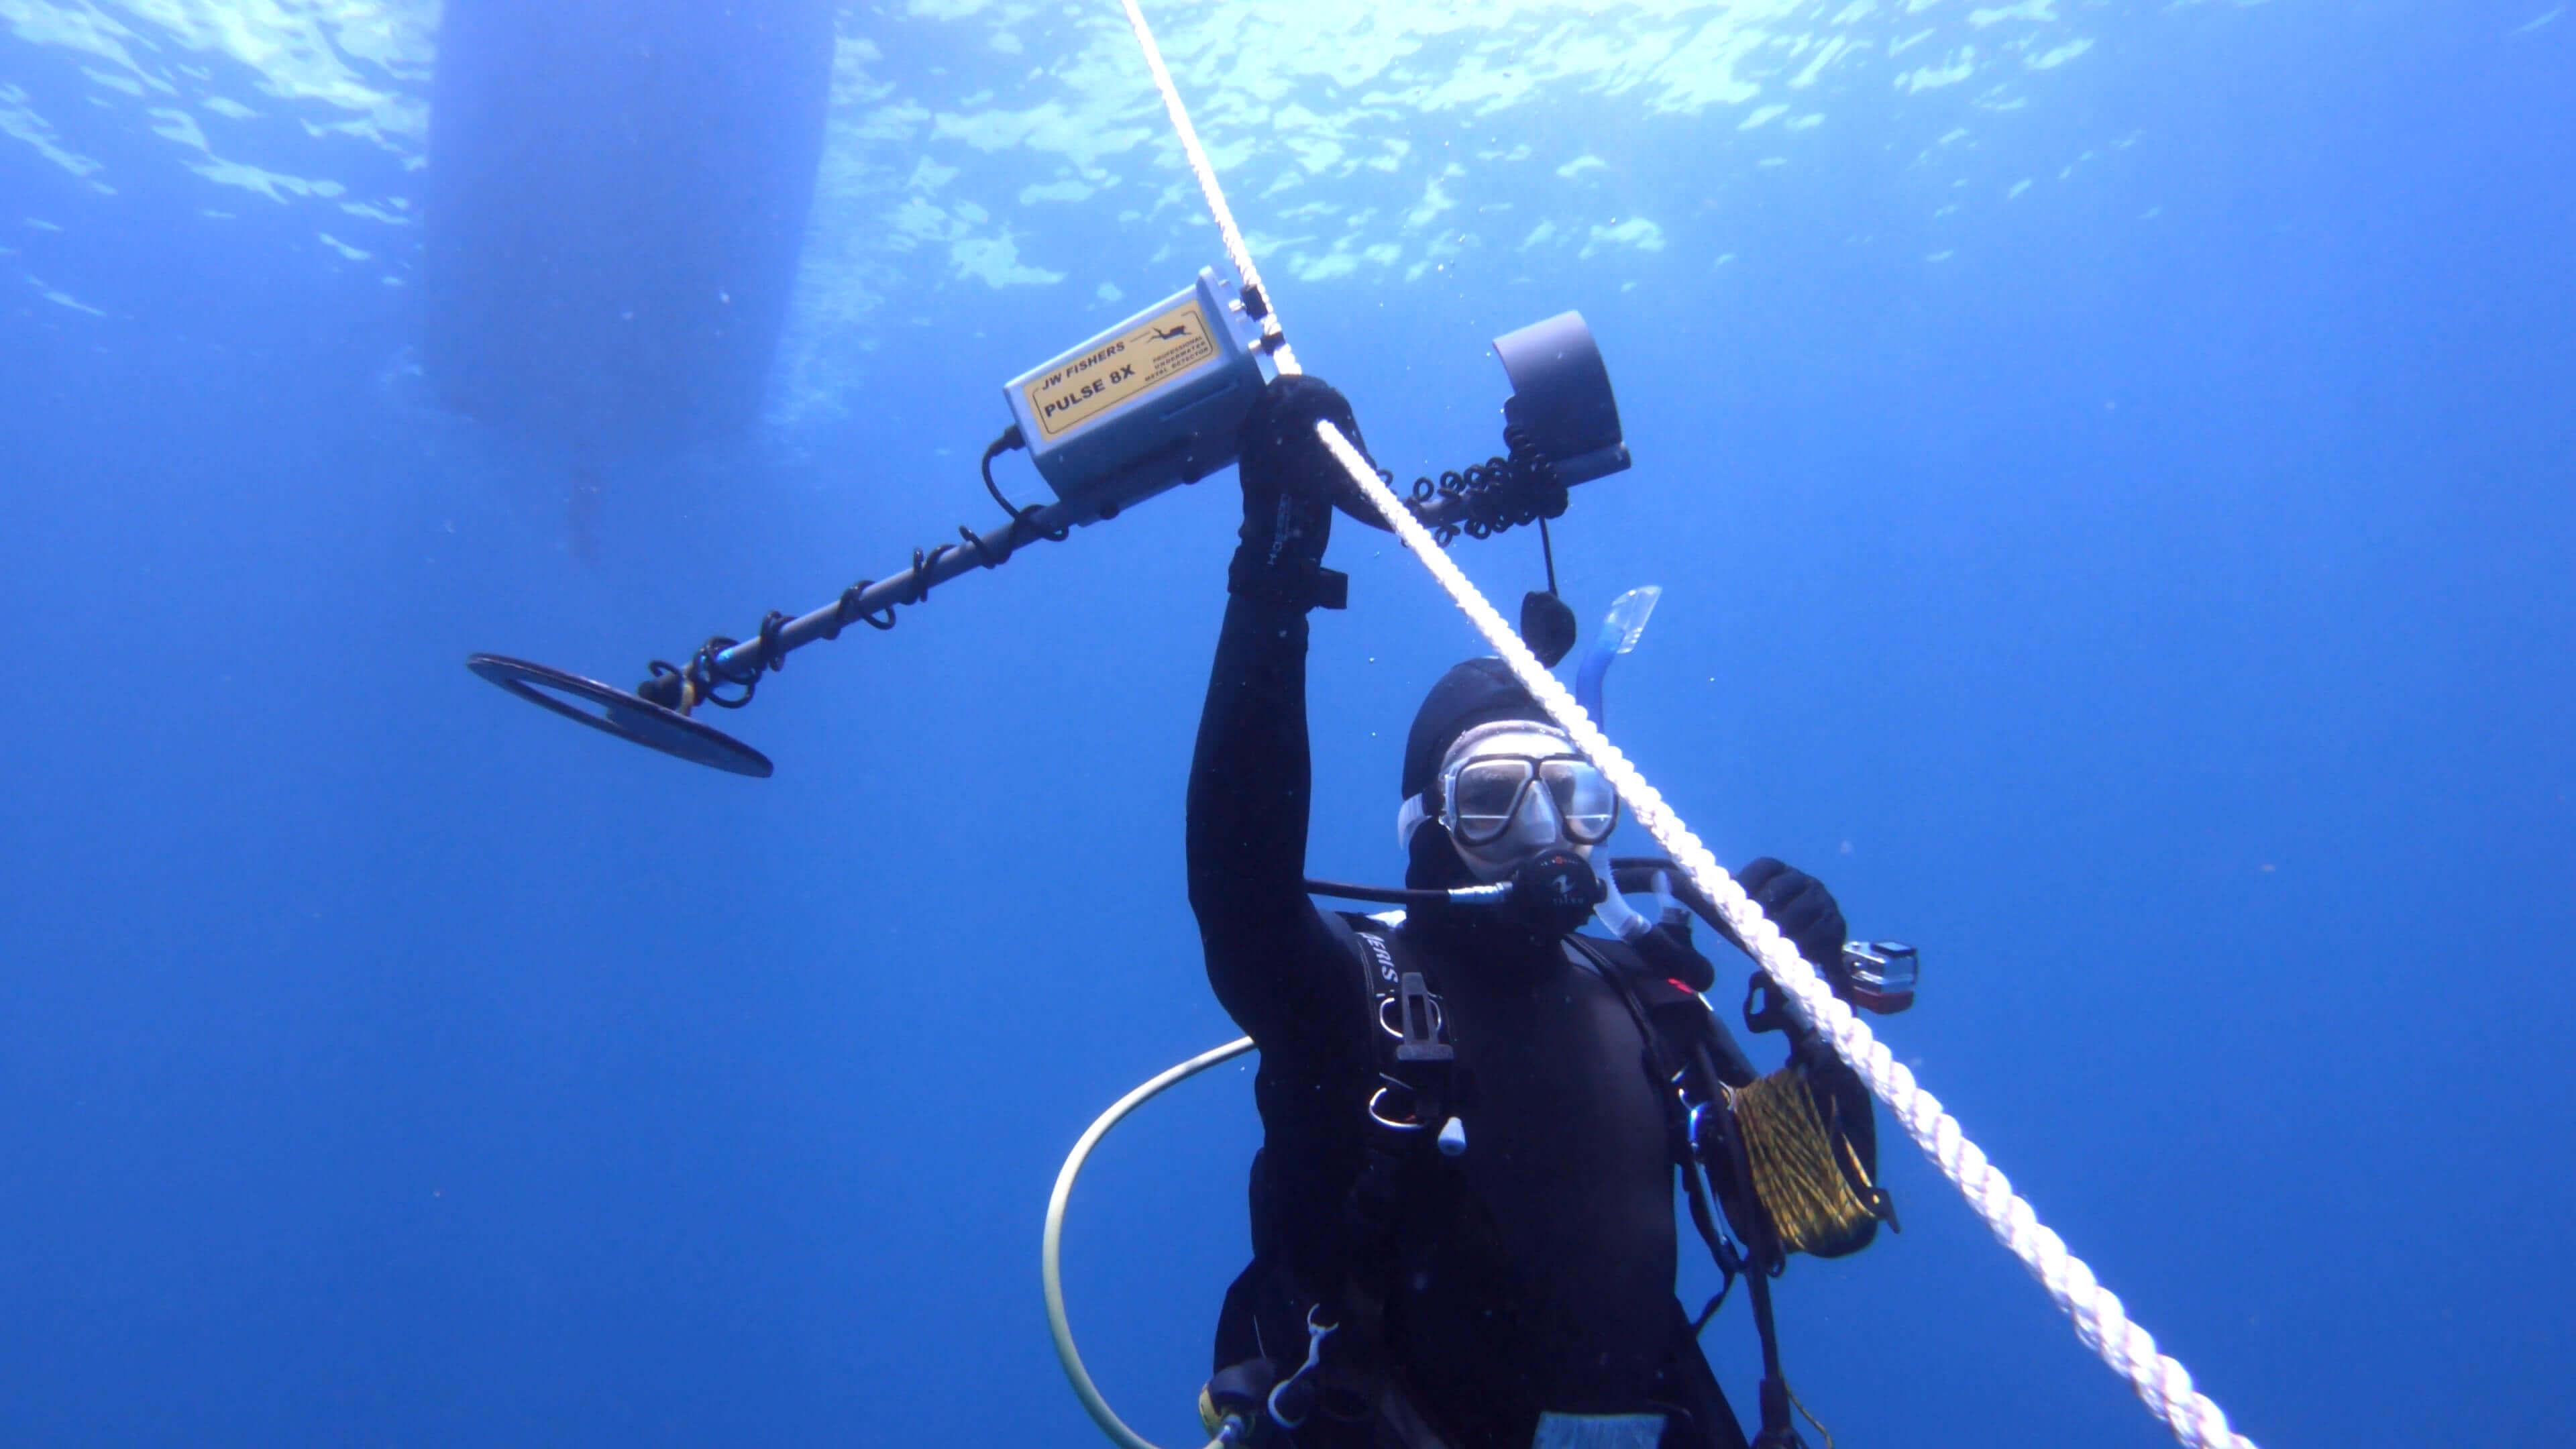 A diver under water holding a Pulse 8X